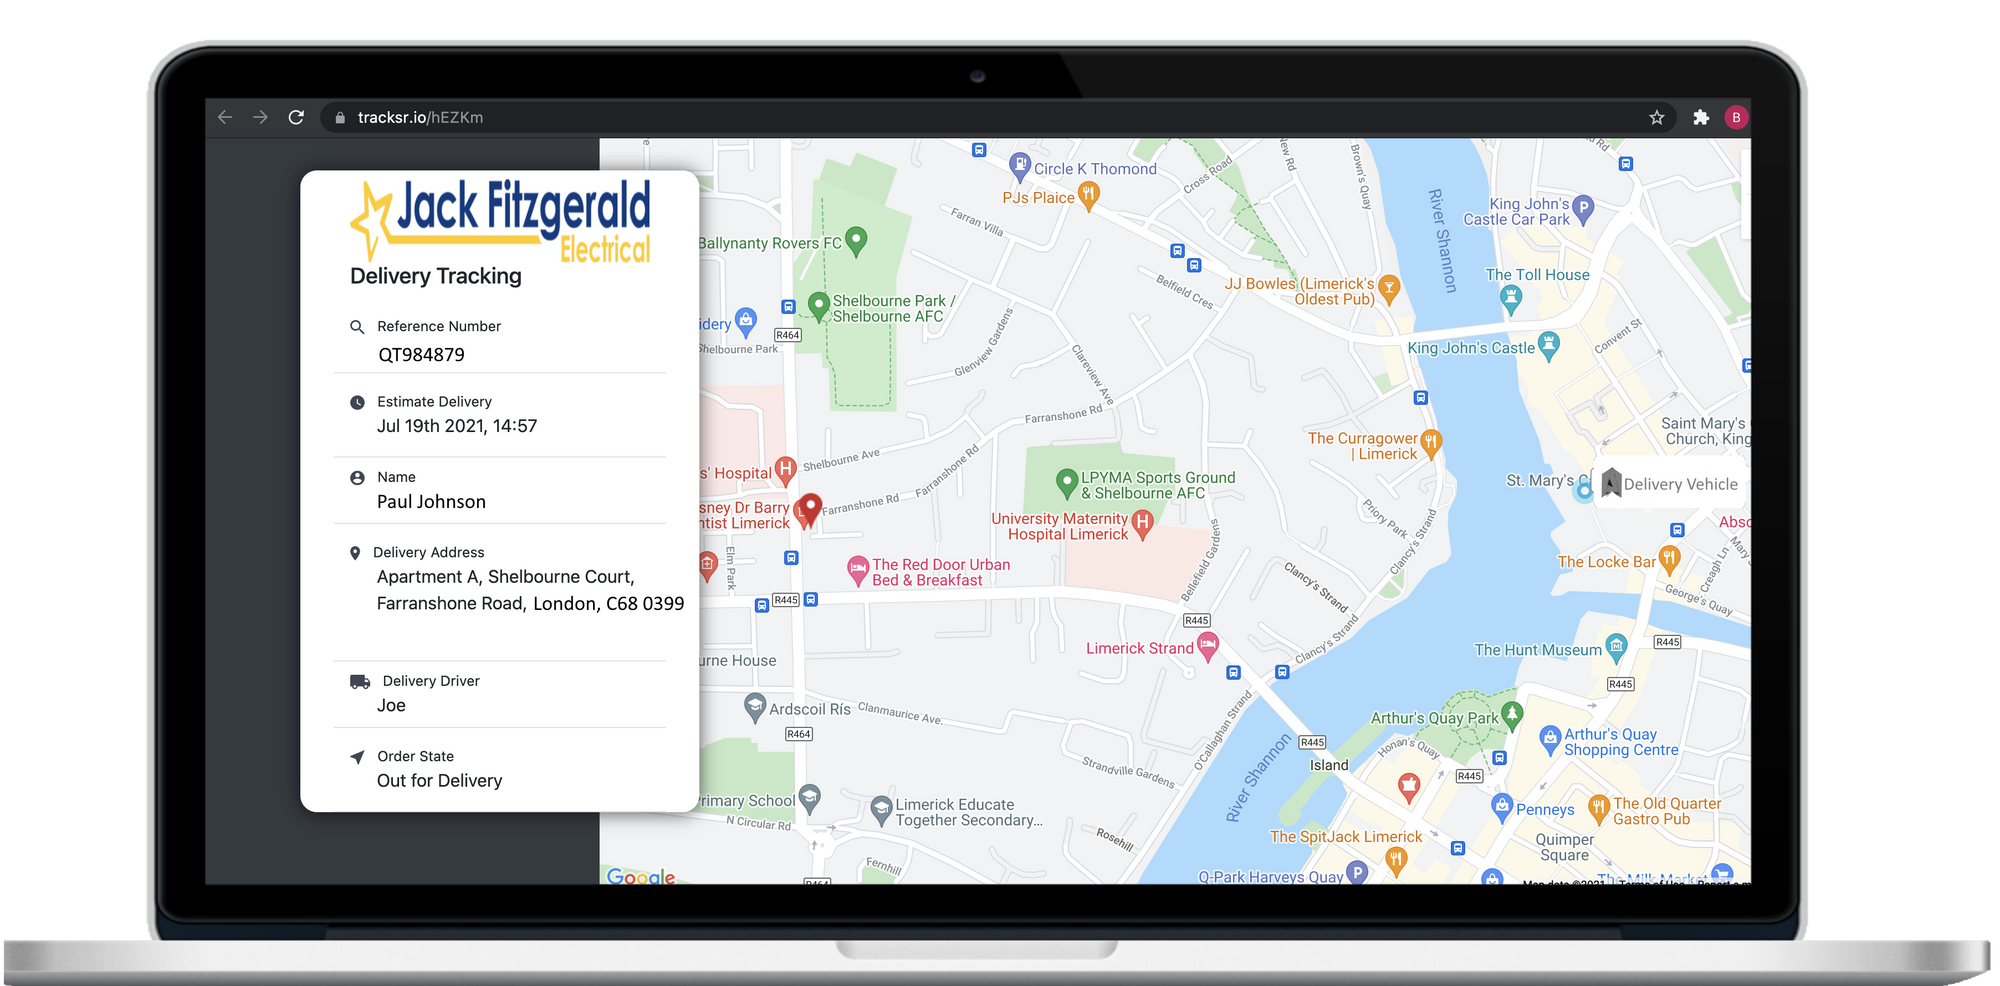 SmartRoutes Customer Live Tracking Portal